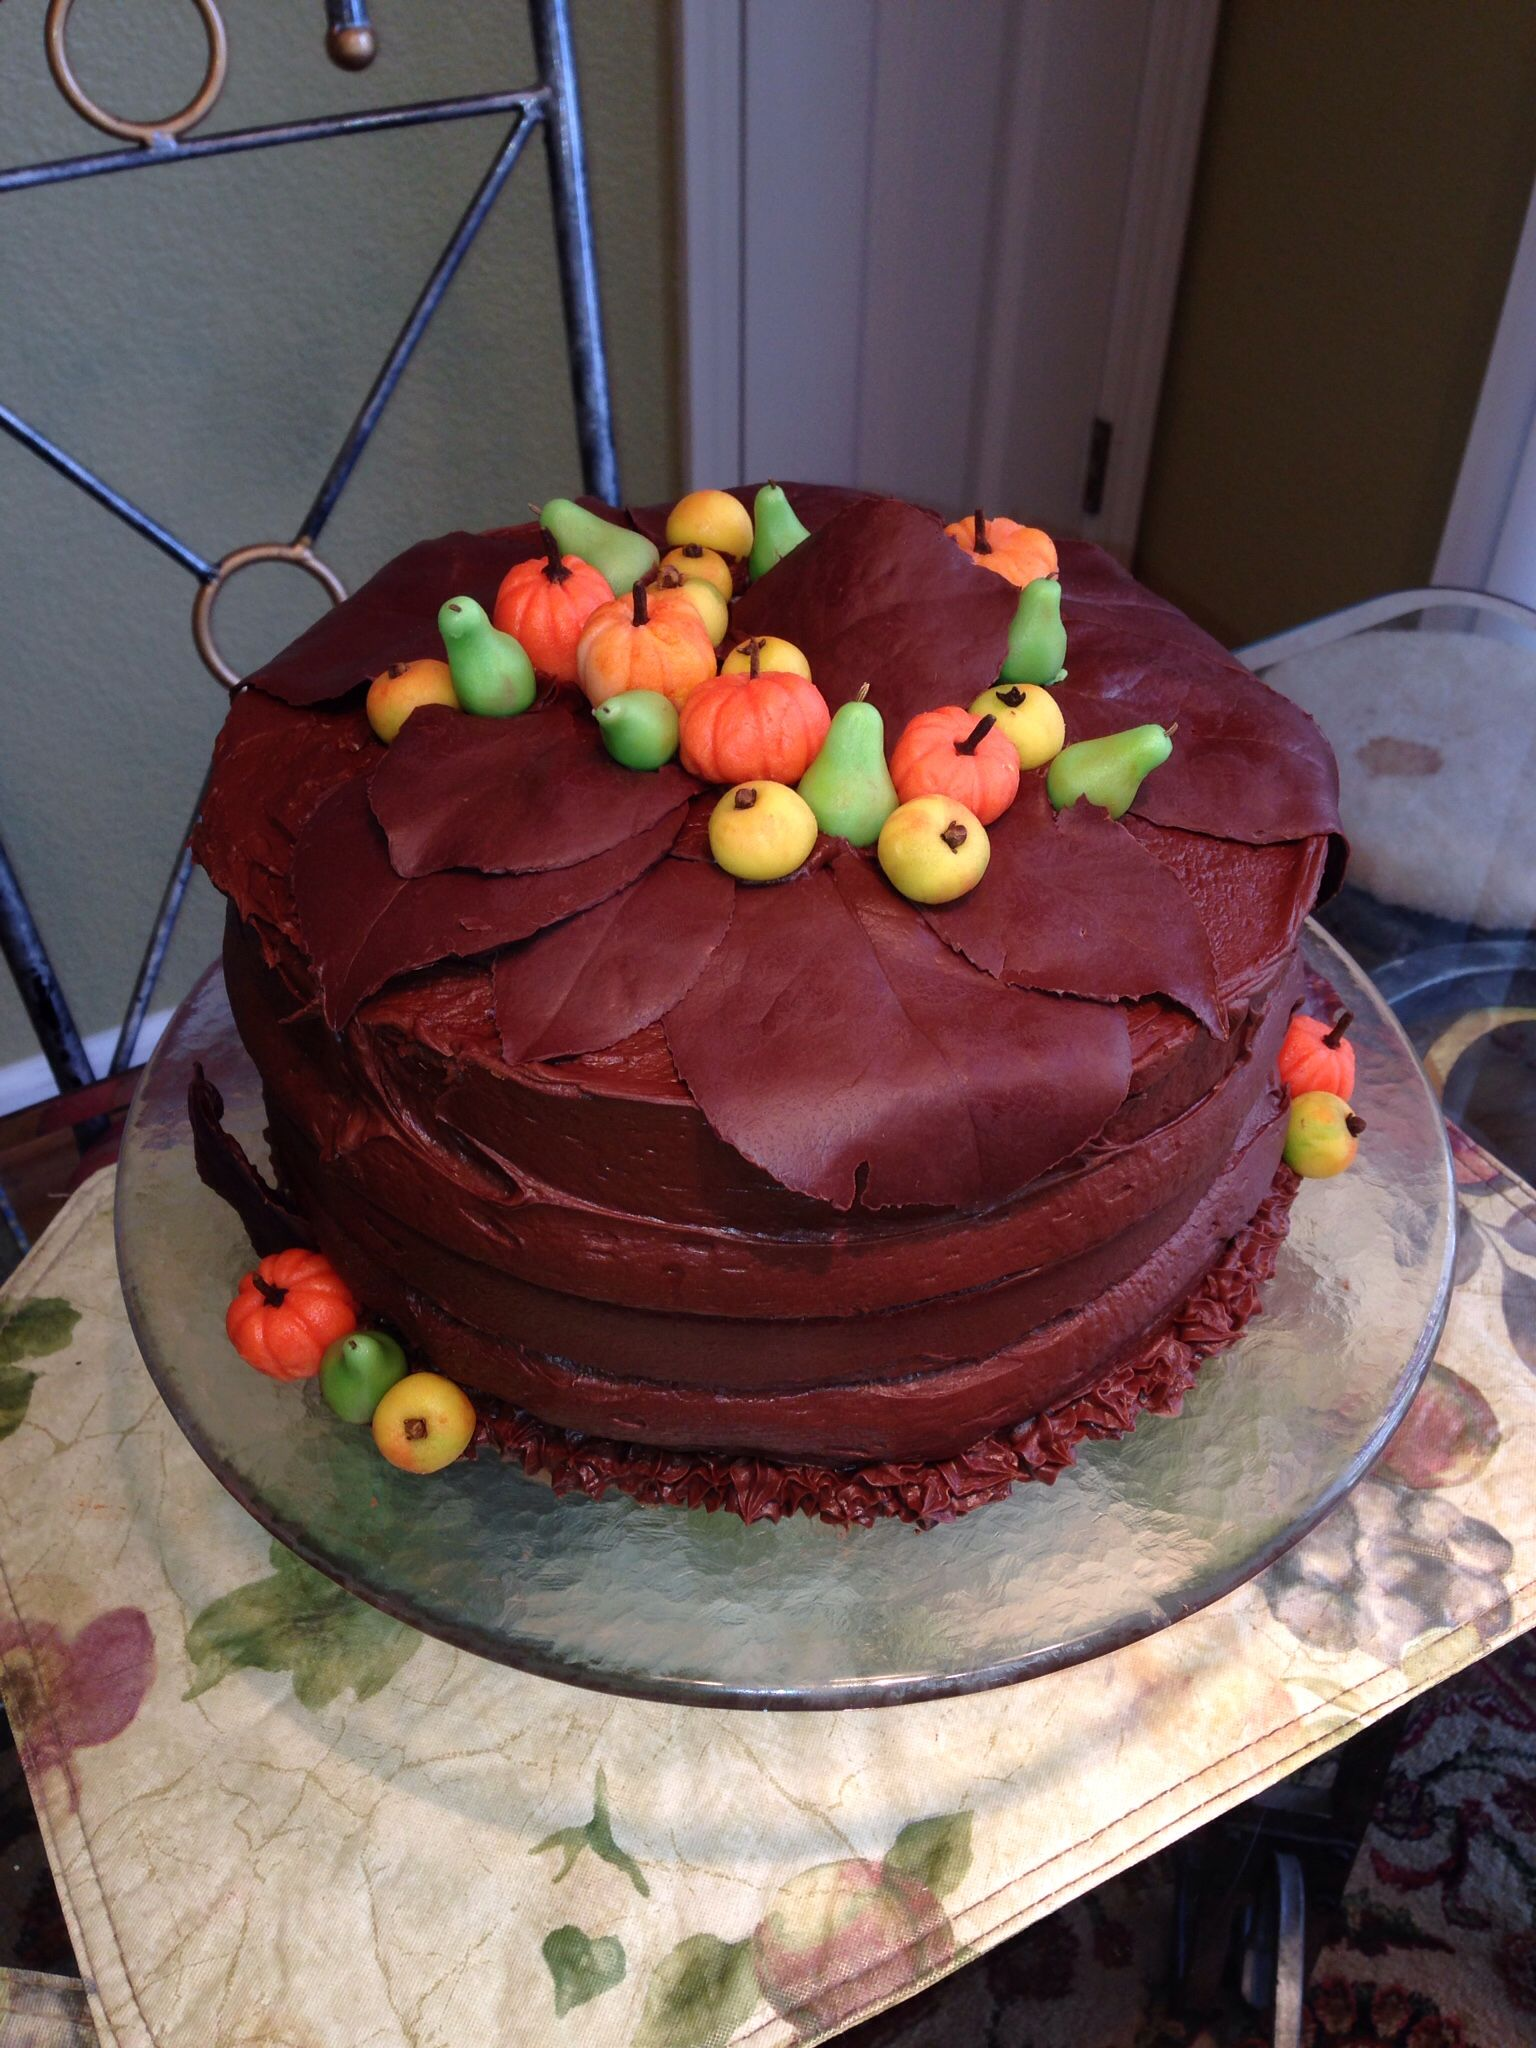 Chocolate Pumpkin Cake with Marzipan fruit and chocolate leaves